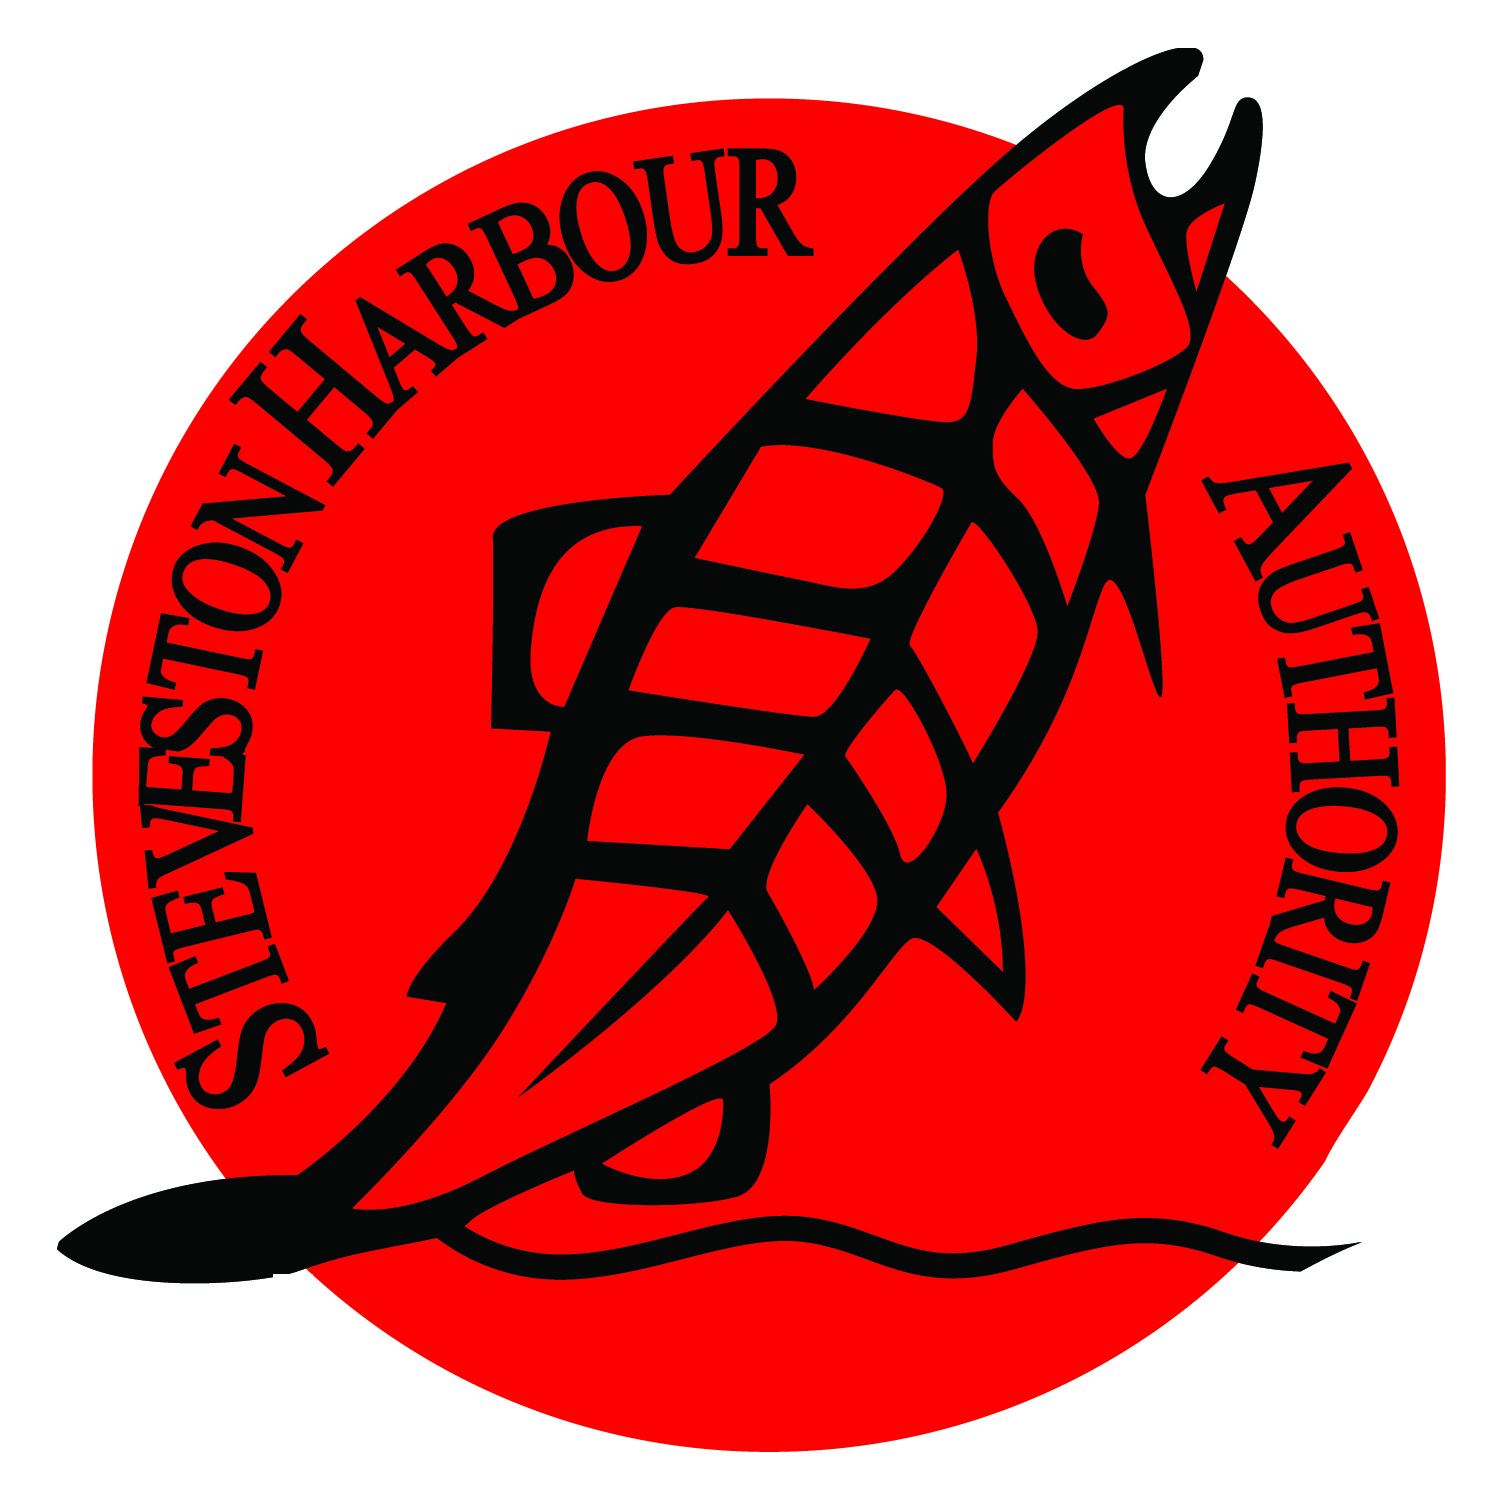 Steveston Harbour Authority (JPG).jpg